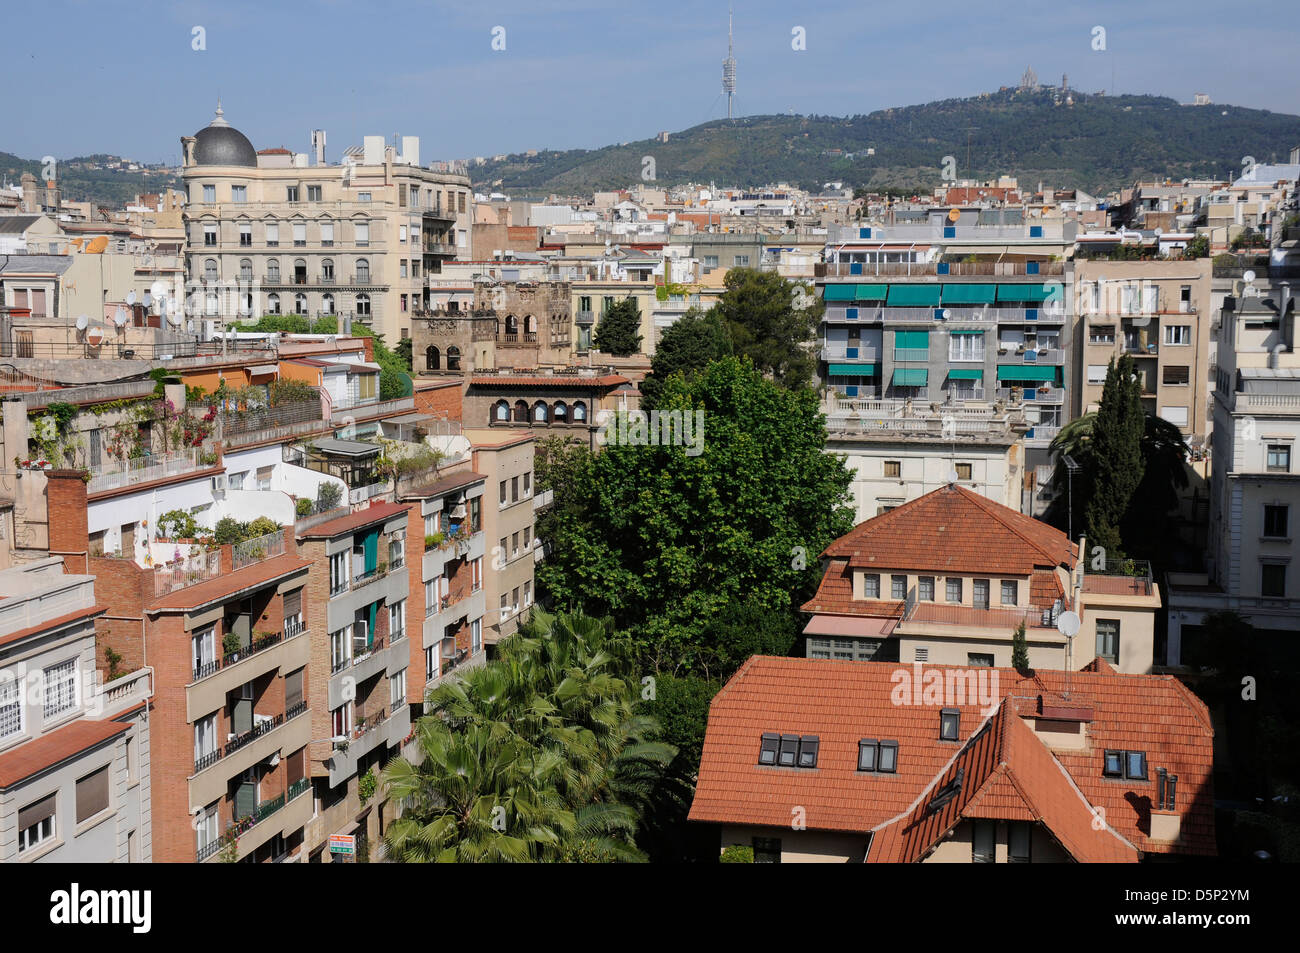 view of the north of Barcelona city from a roof in the sant gervasi neighborhood district - Stock Image